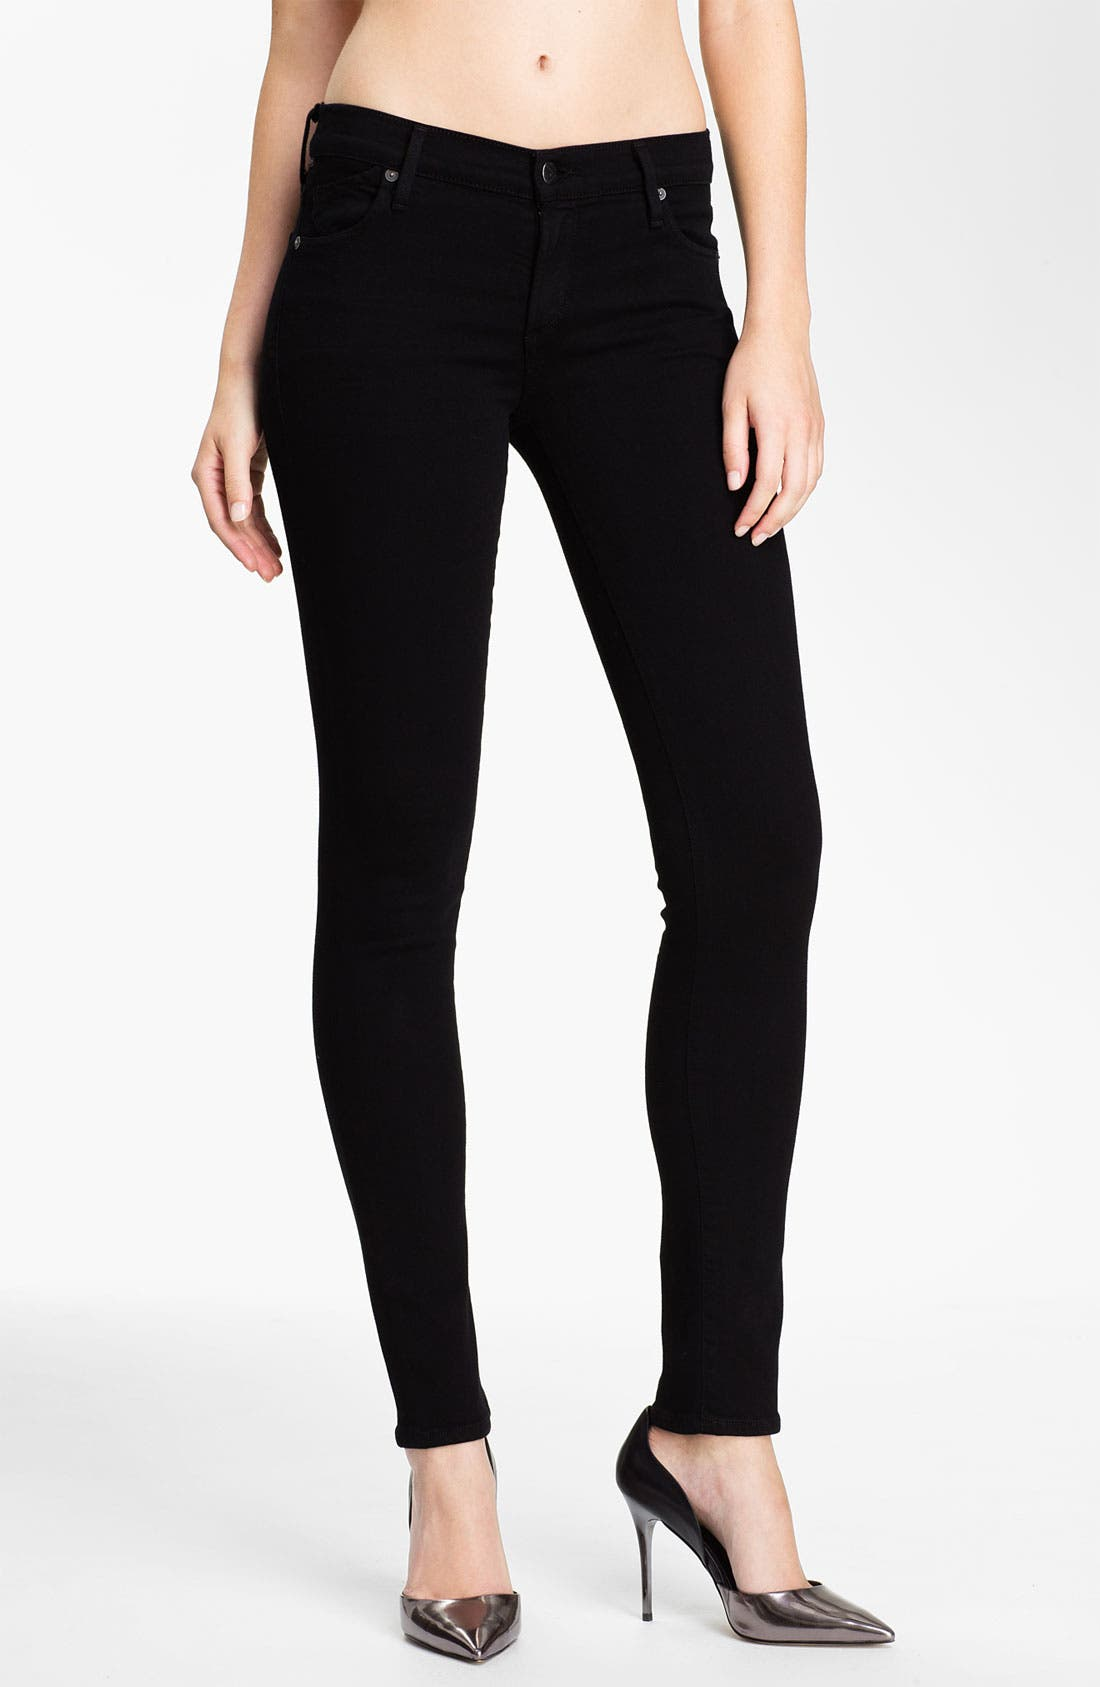 Alternate Image 1 Selected - Citizens of Humanity Skinny Stretch Leggings (Axle)